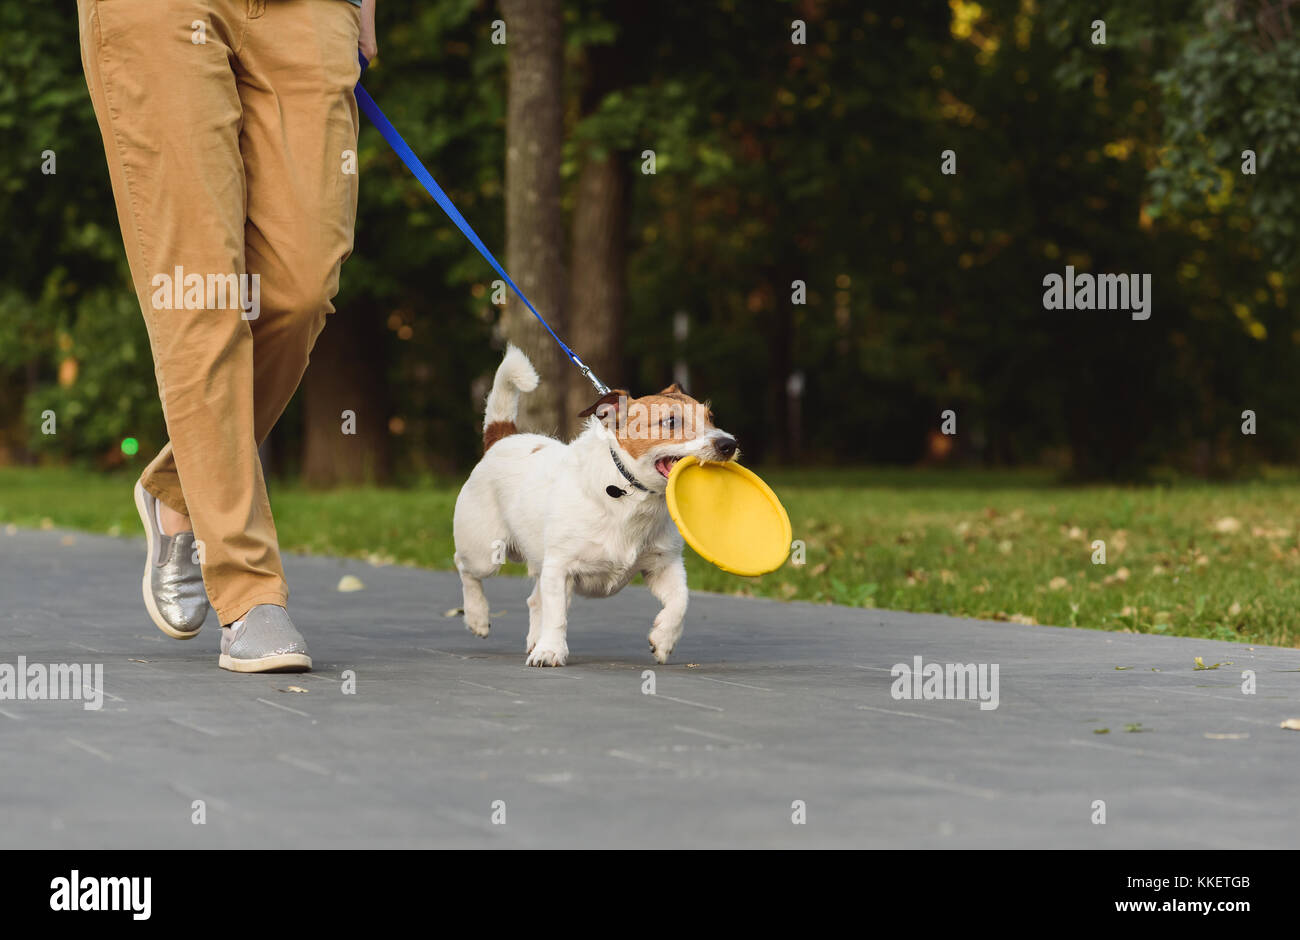 Obedient dog next to owner walking on leash holding toy in mouth - Stock Image